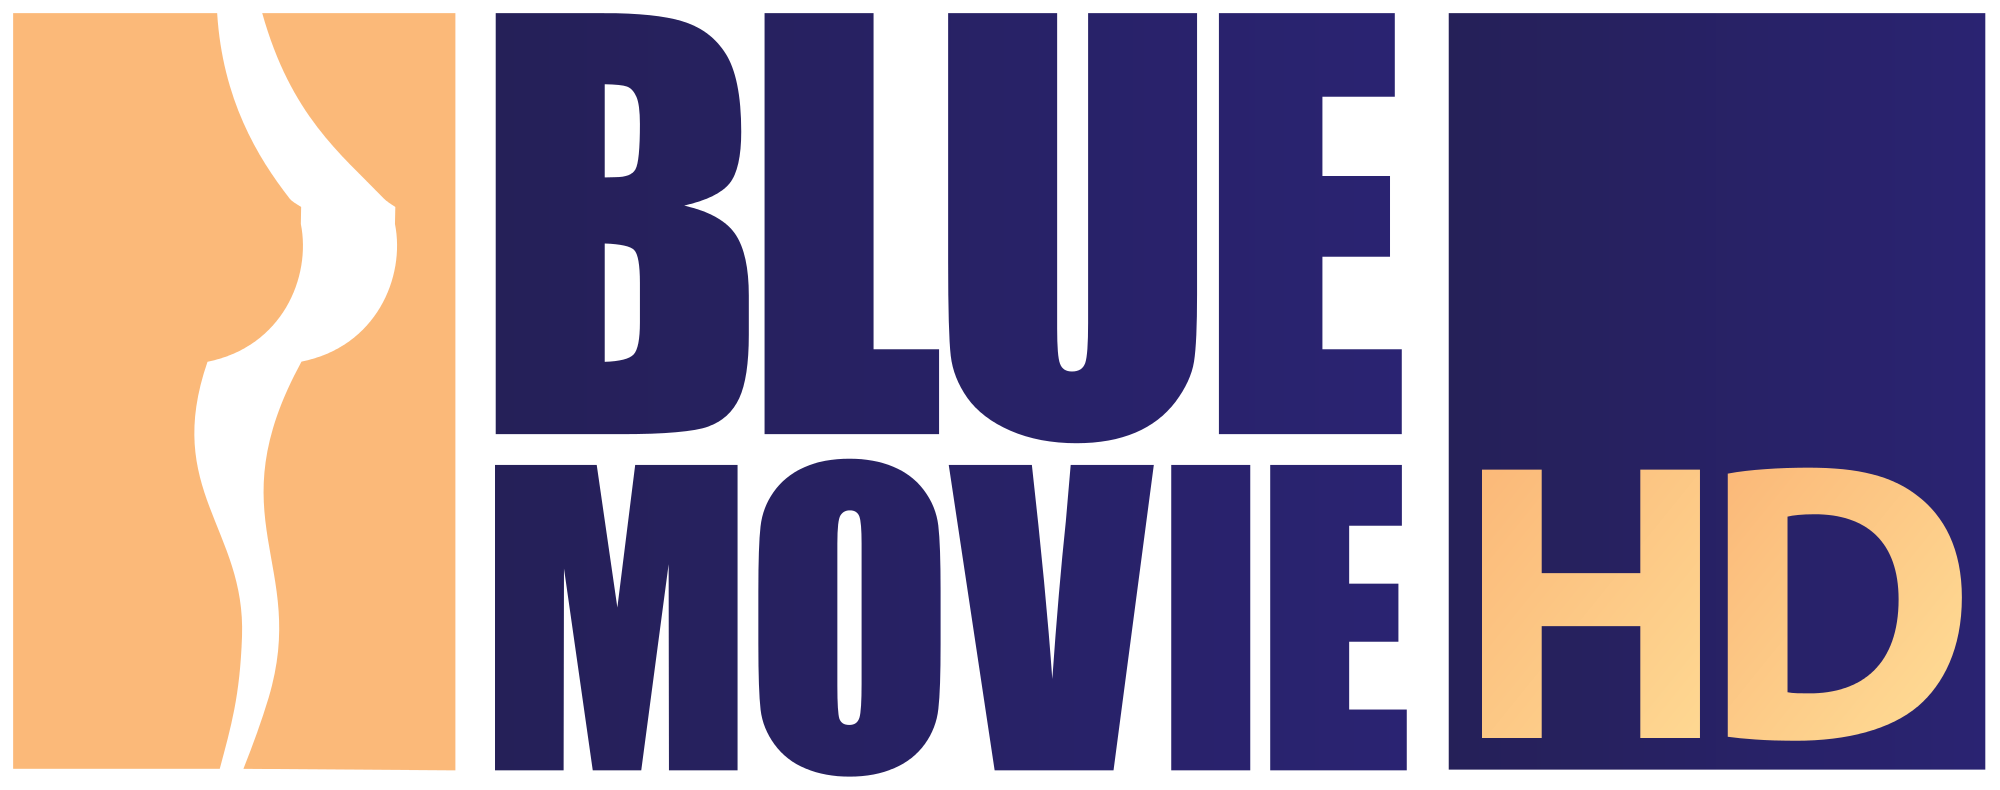 Open PlusPng.com  - Movie HD PNG